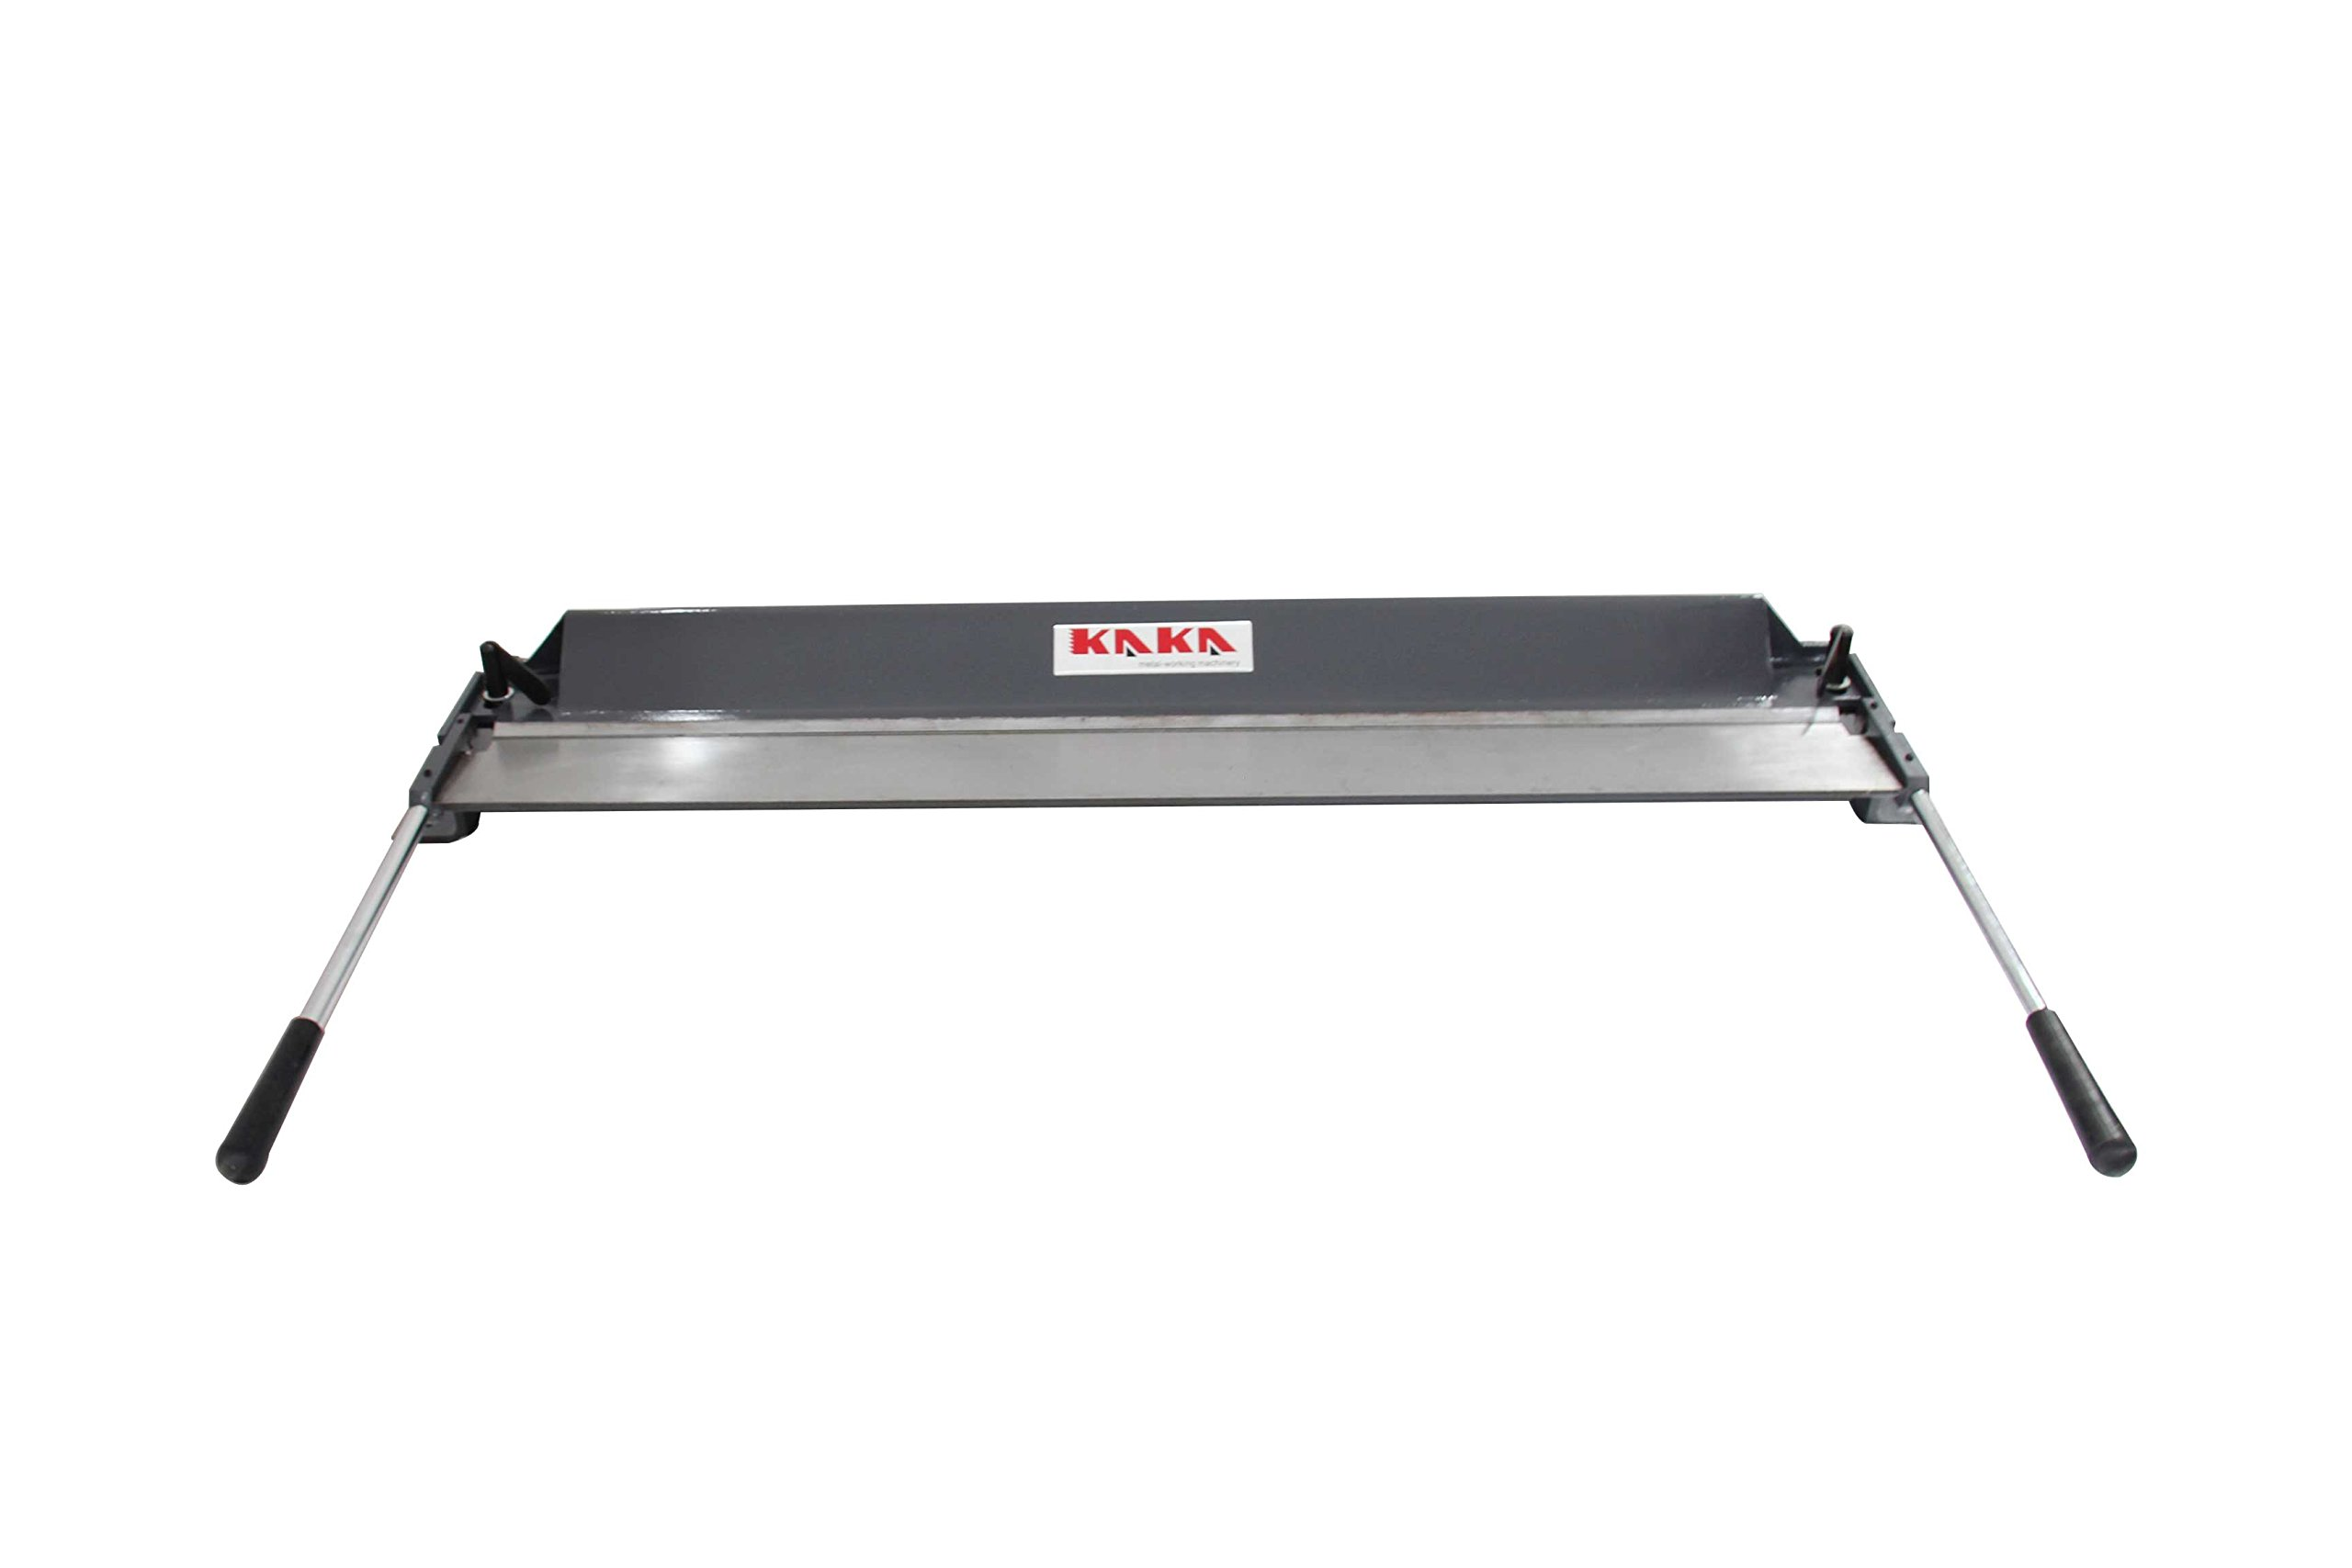 Kaka Industrial W1.2x1000 40-Inch Sheet Metal Bending Brake, 18 Gauge Mild Steel and 16 Gauge Aluminum